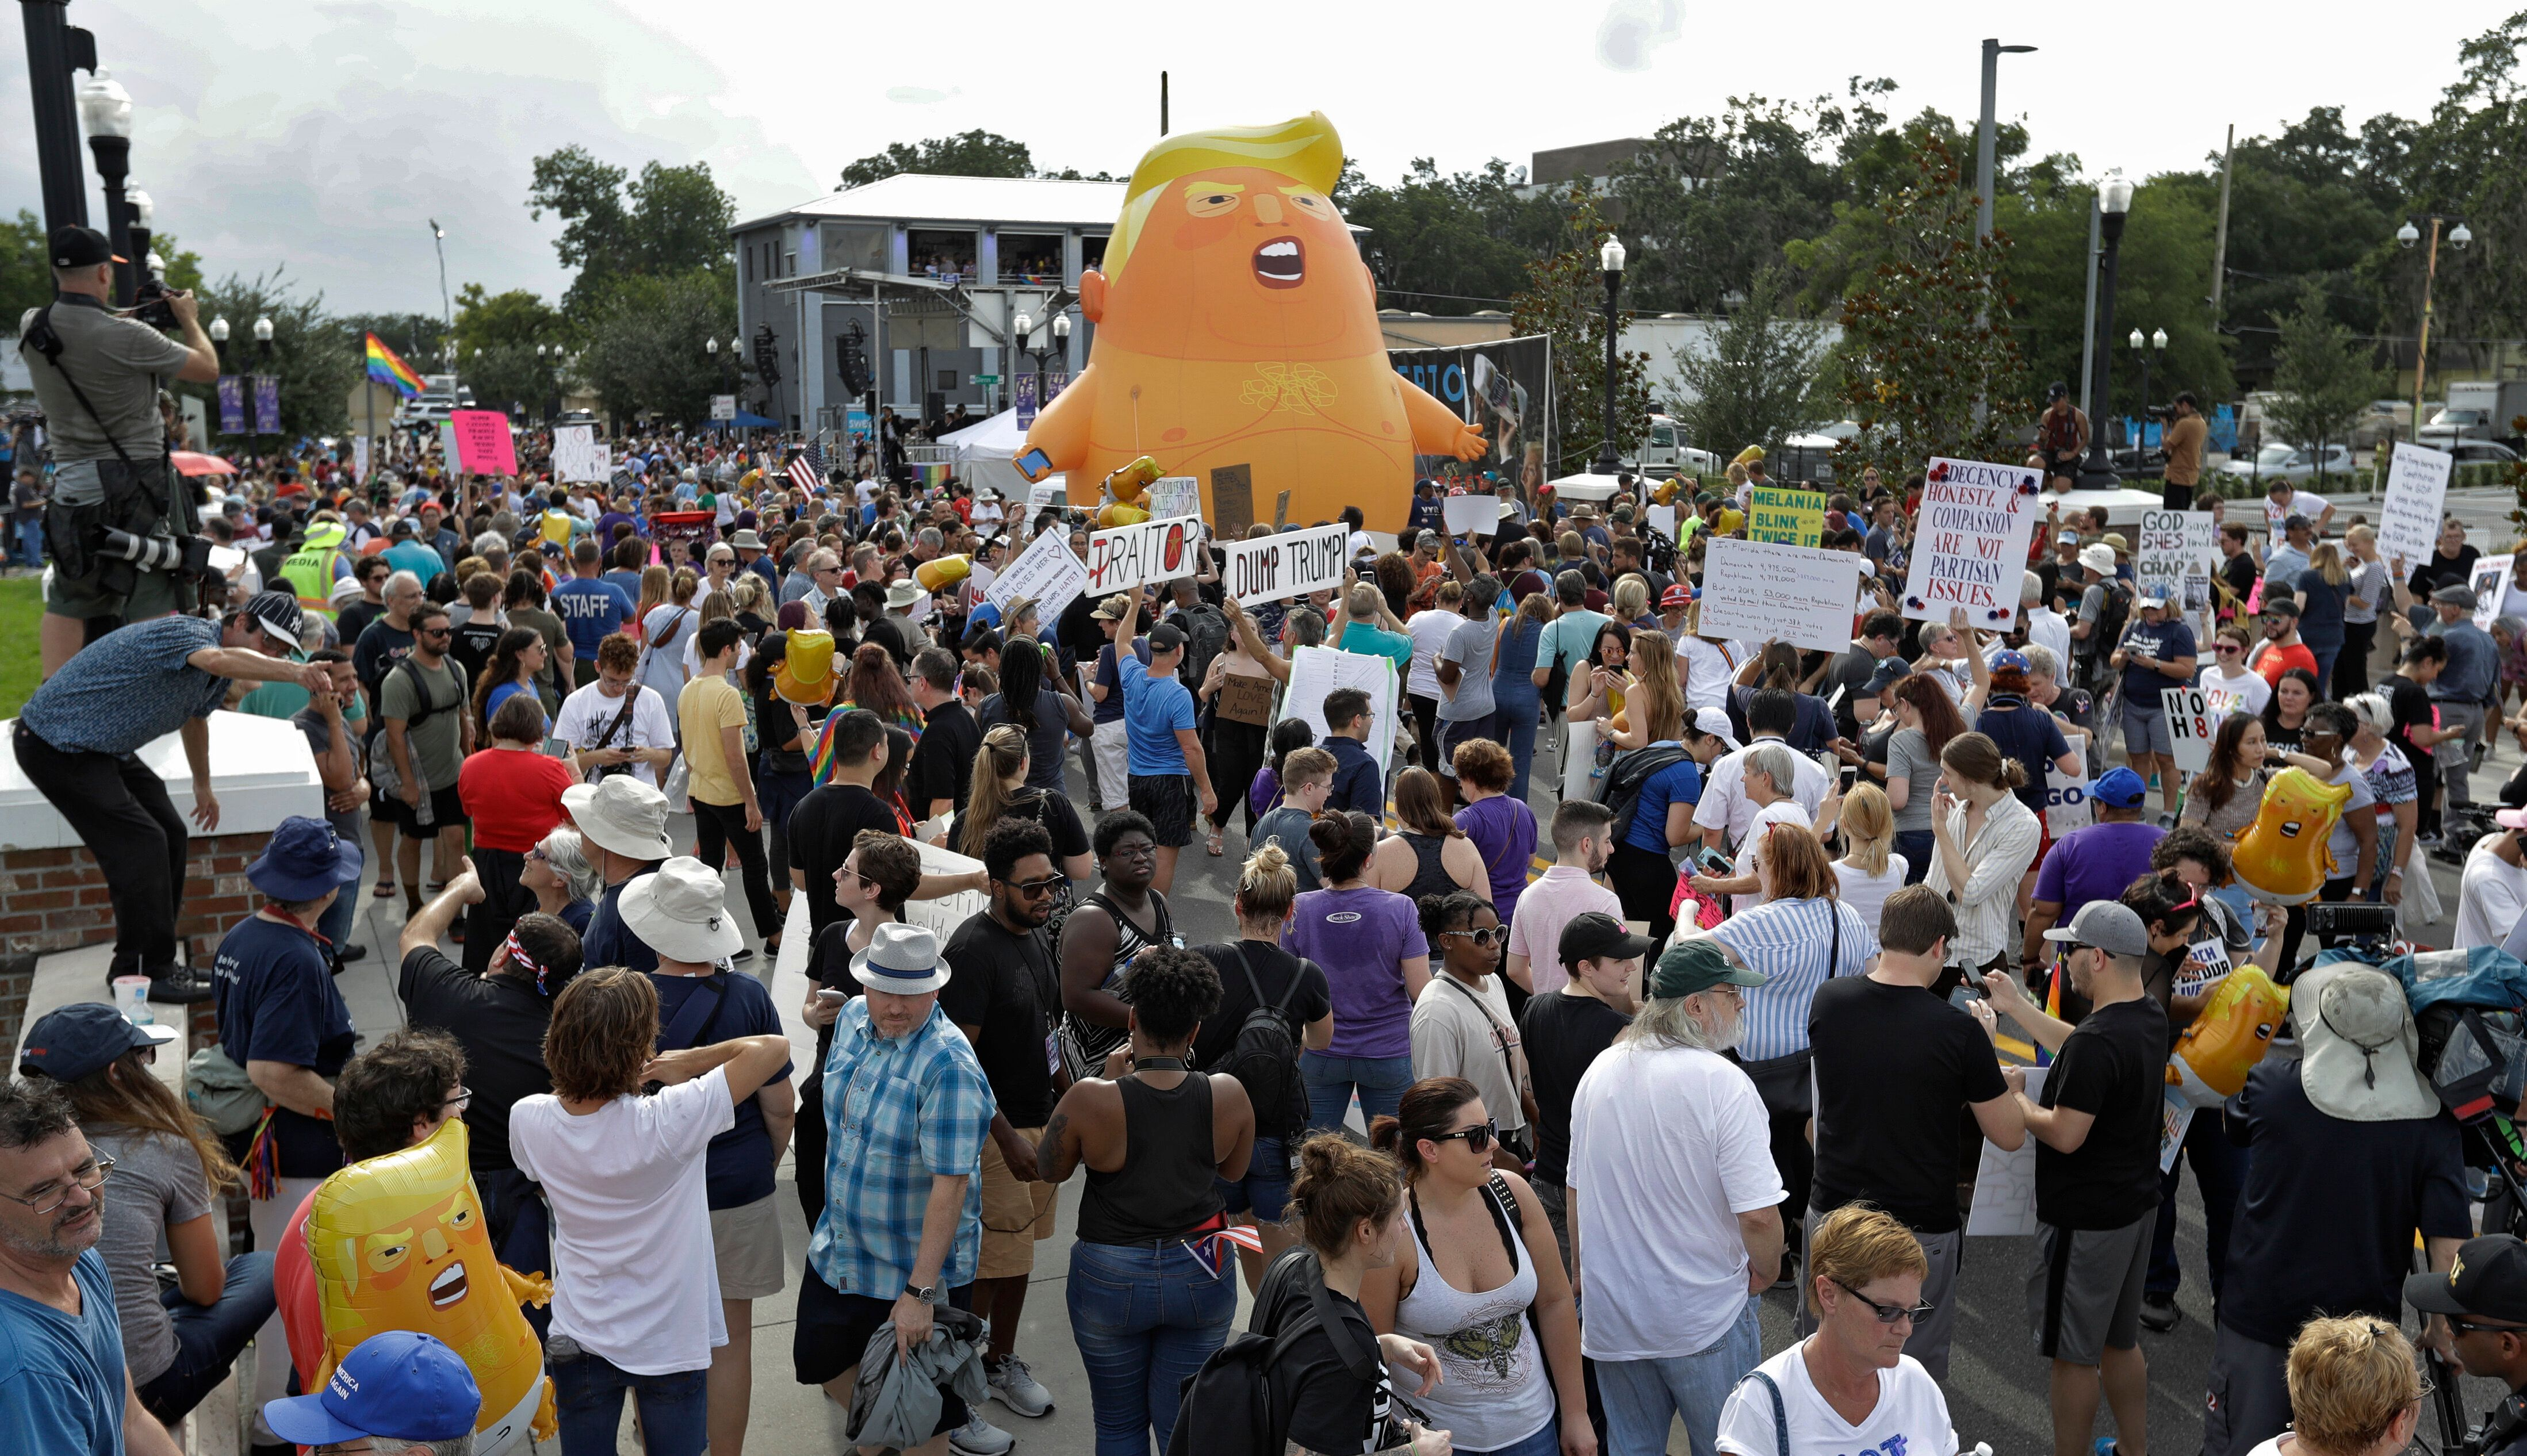 An inflatable Baby Trump balloon towered over protesters during a rally Tuesday, June 18, in Orlando, Florida. A large group